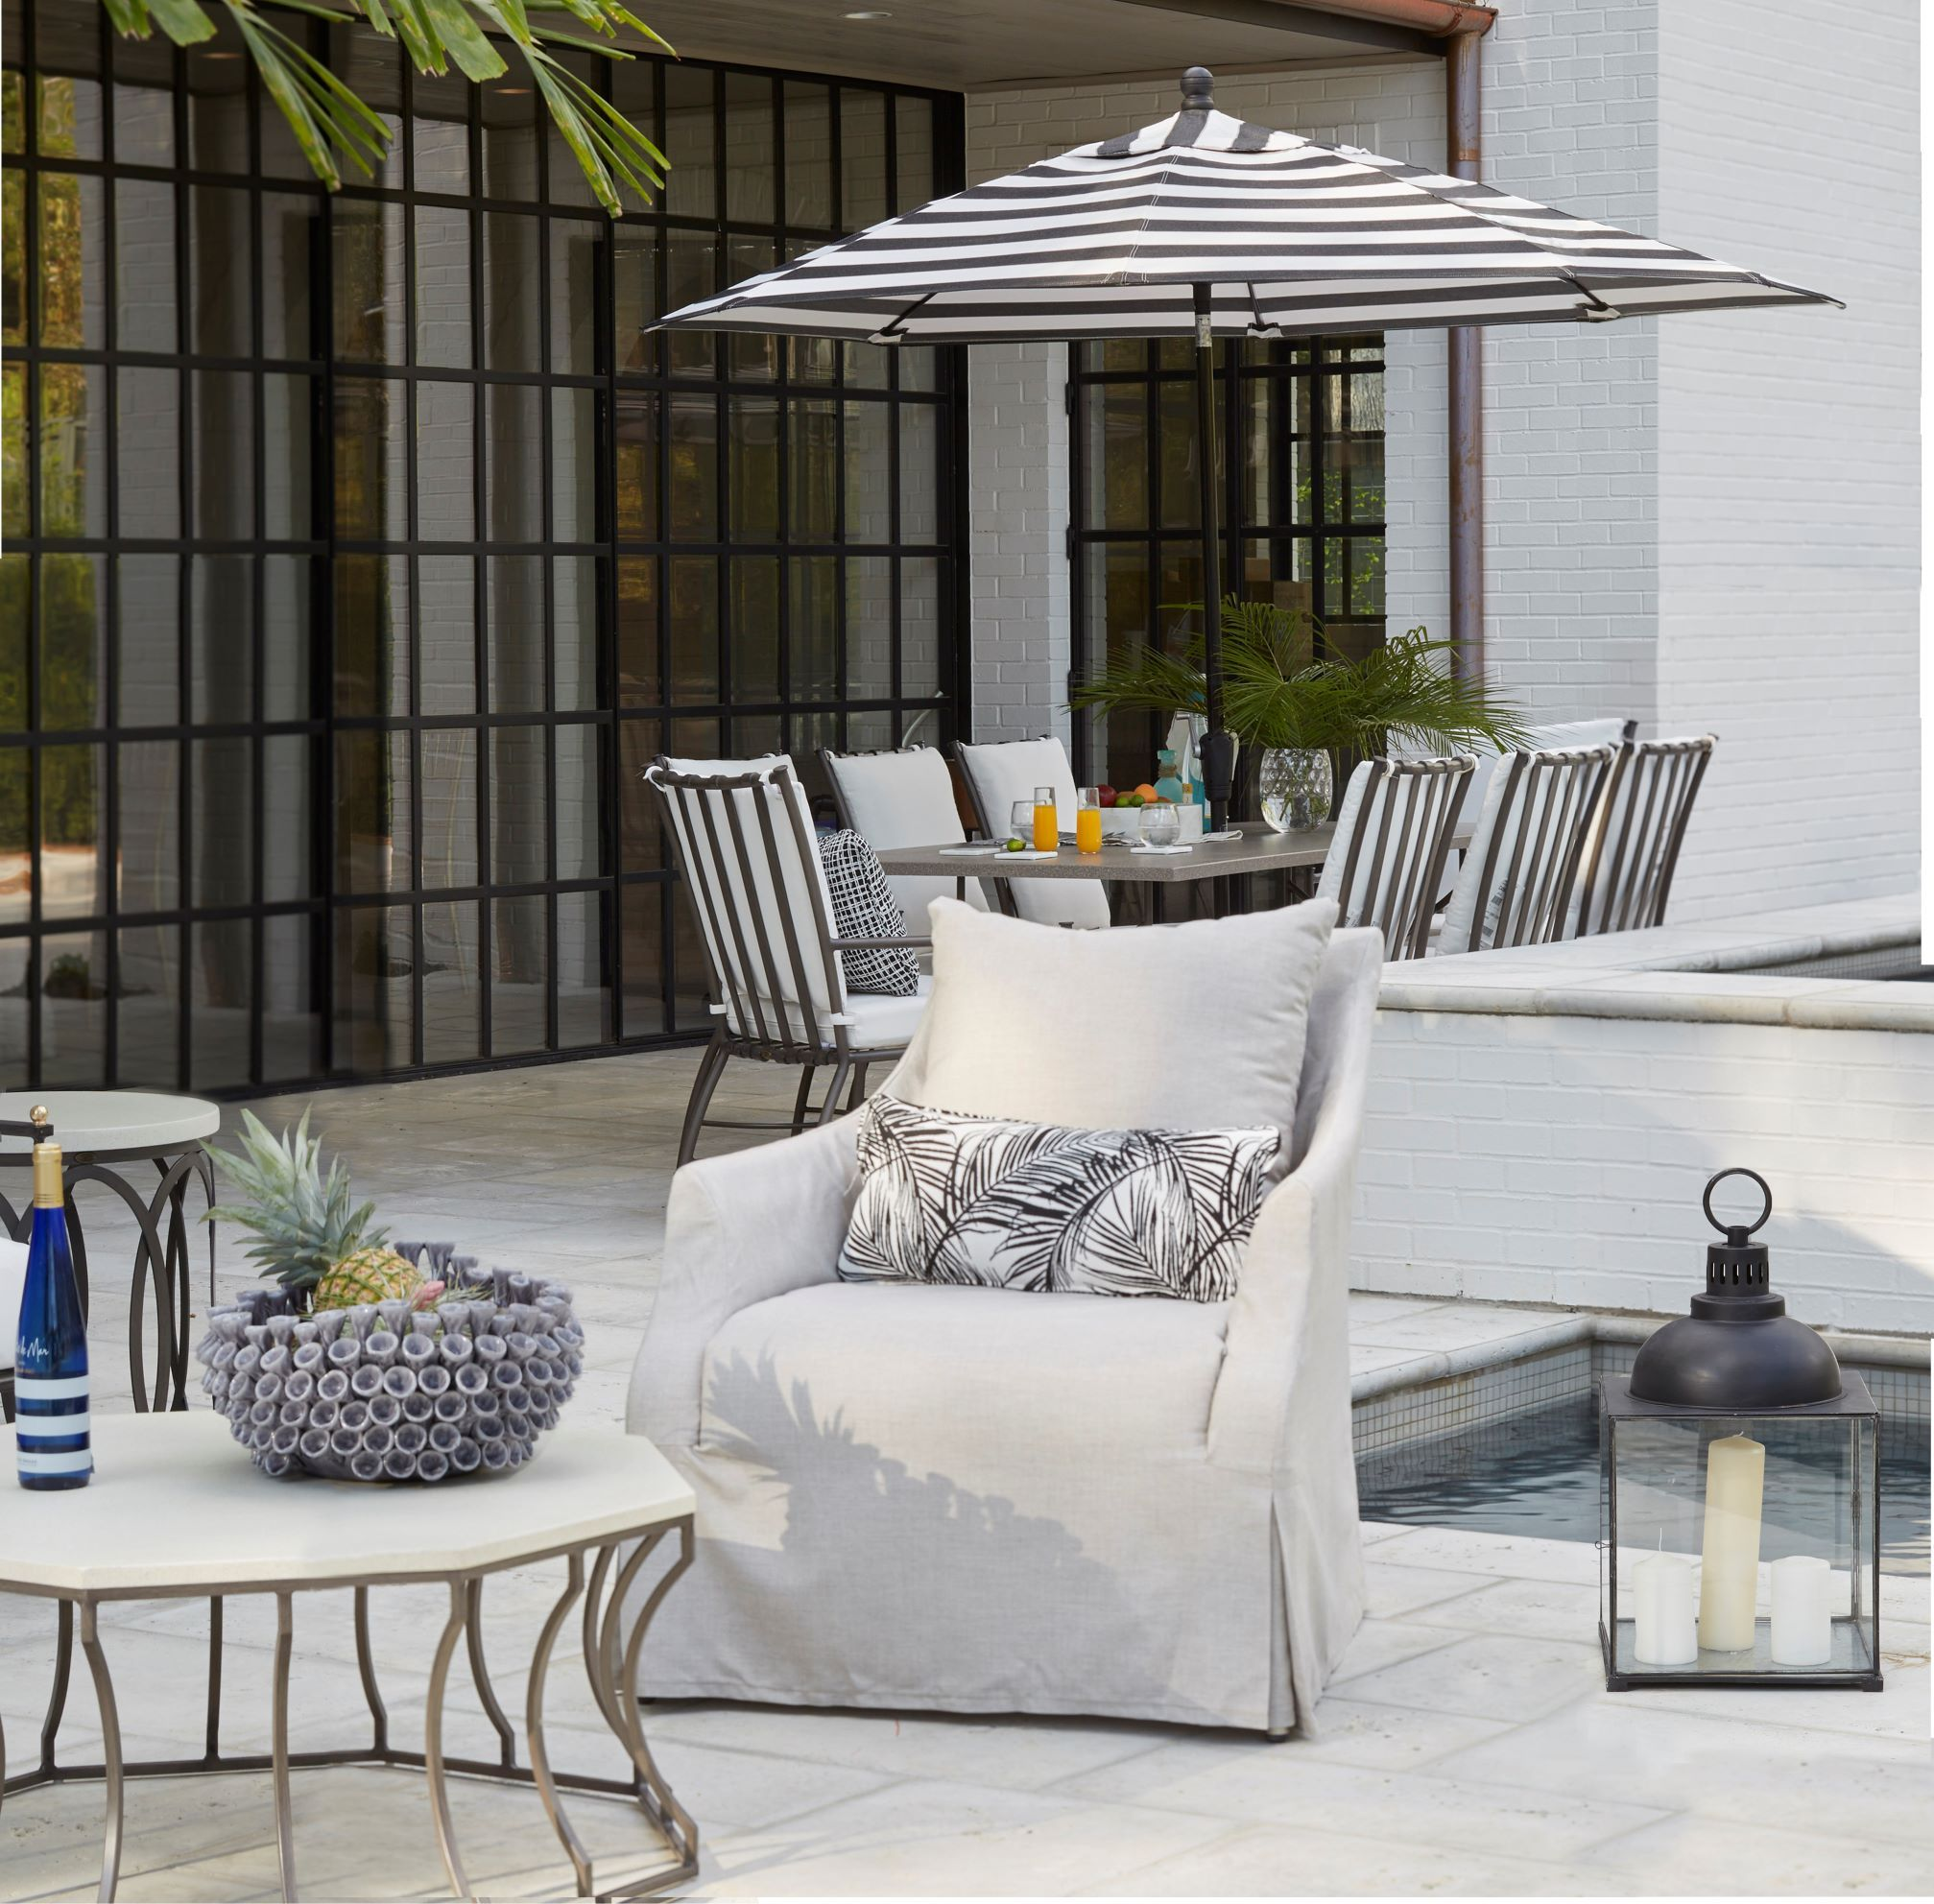 Design Your Space With A 10 000 Backyard Makeover With Images Patio Chairs Classic Home Decor Summer Classics